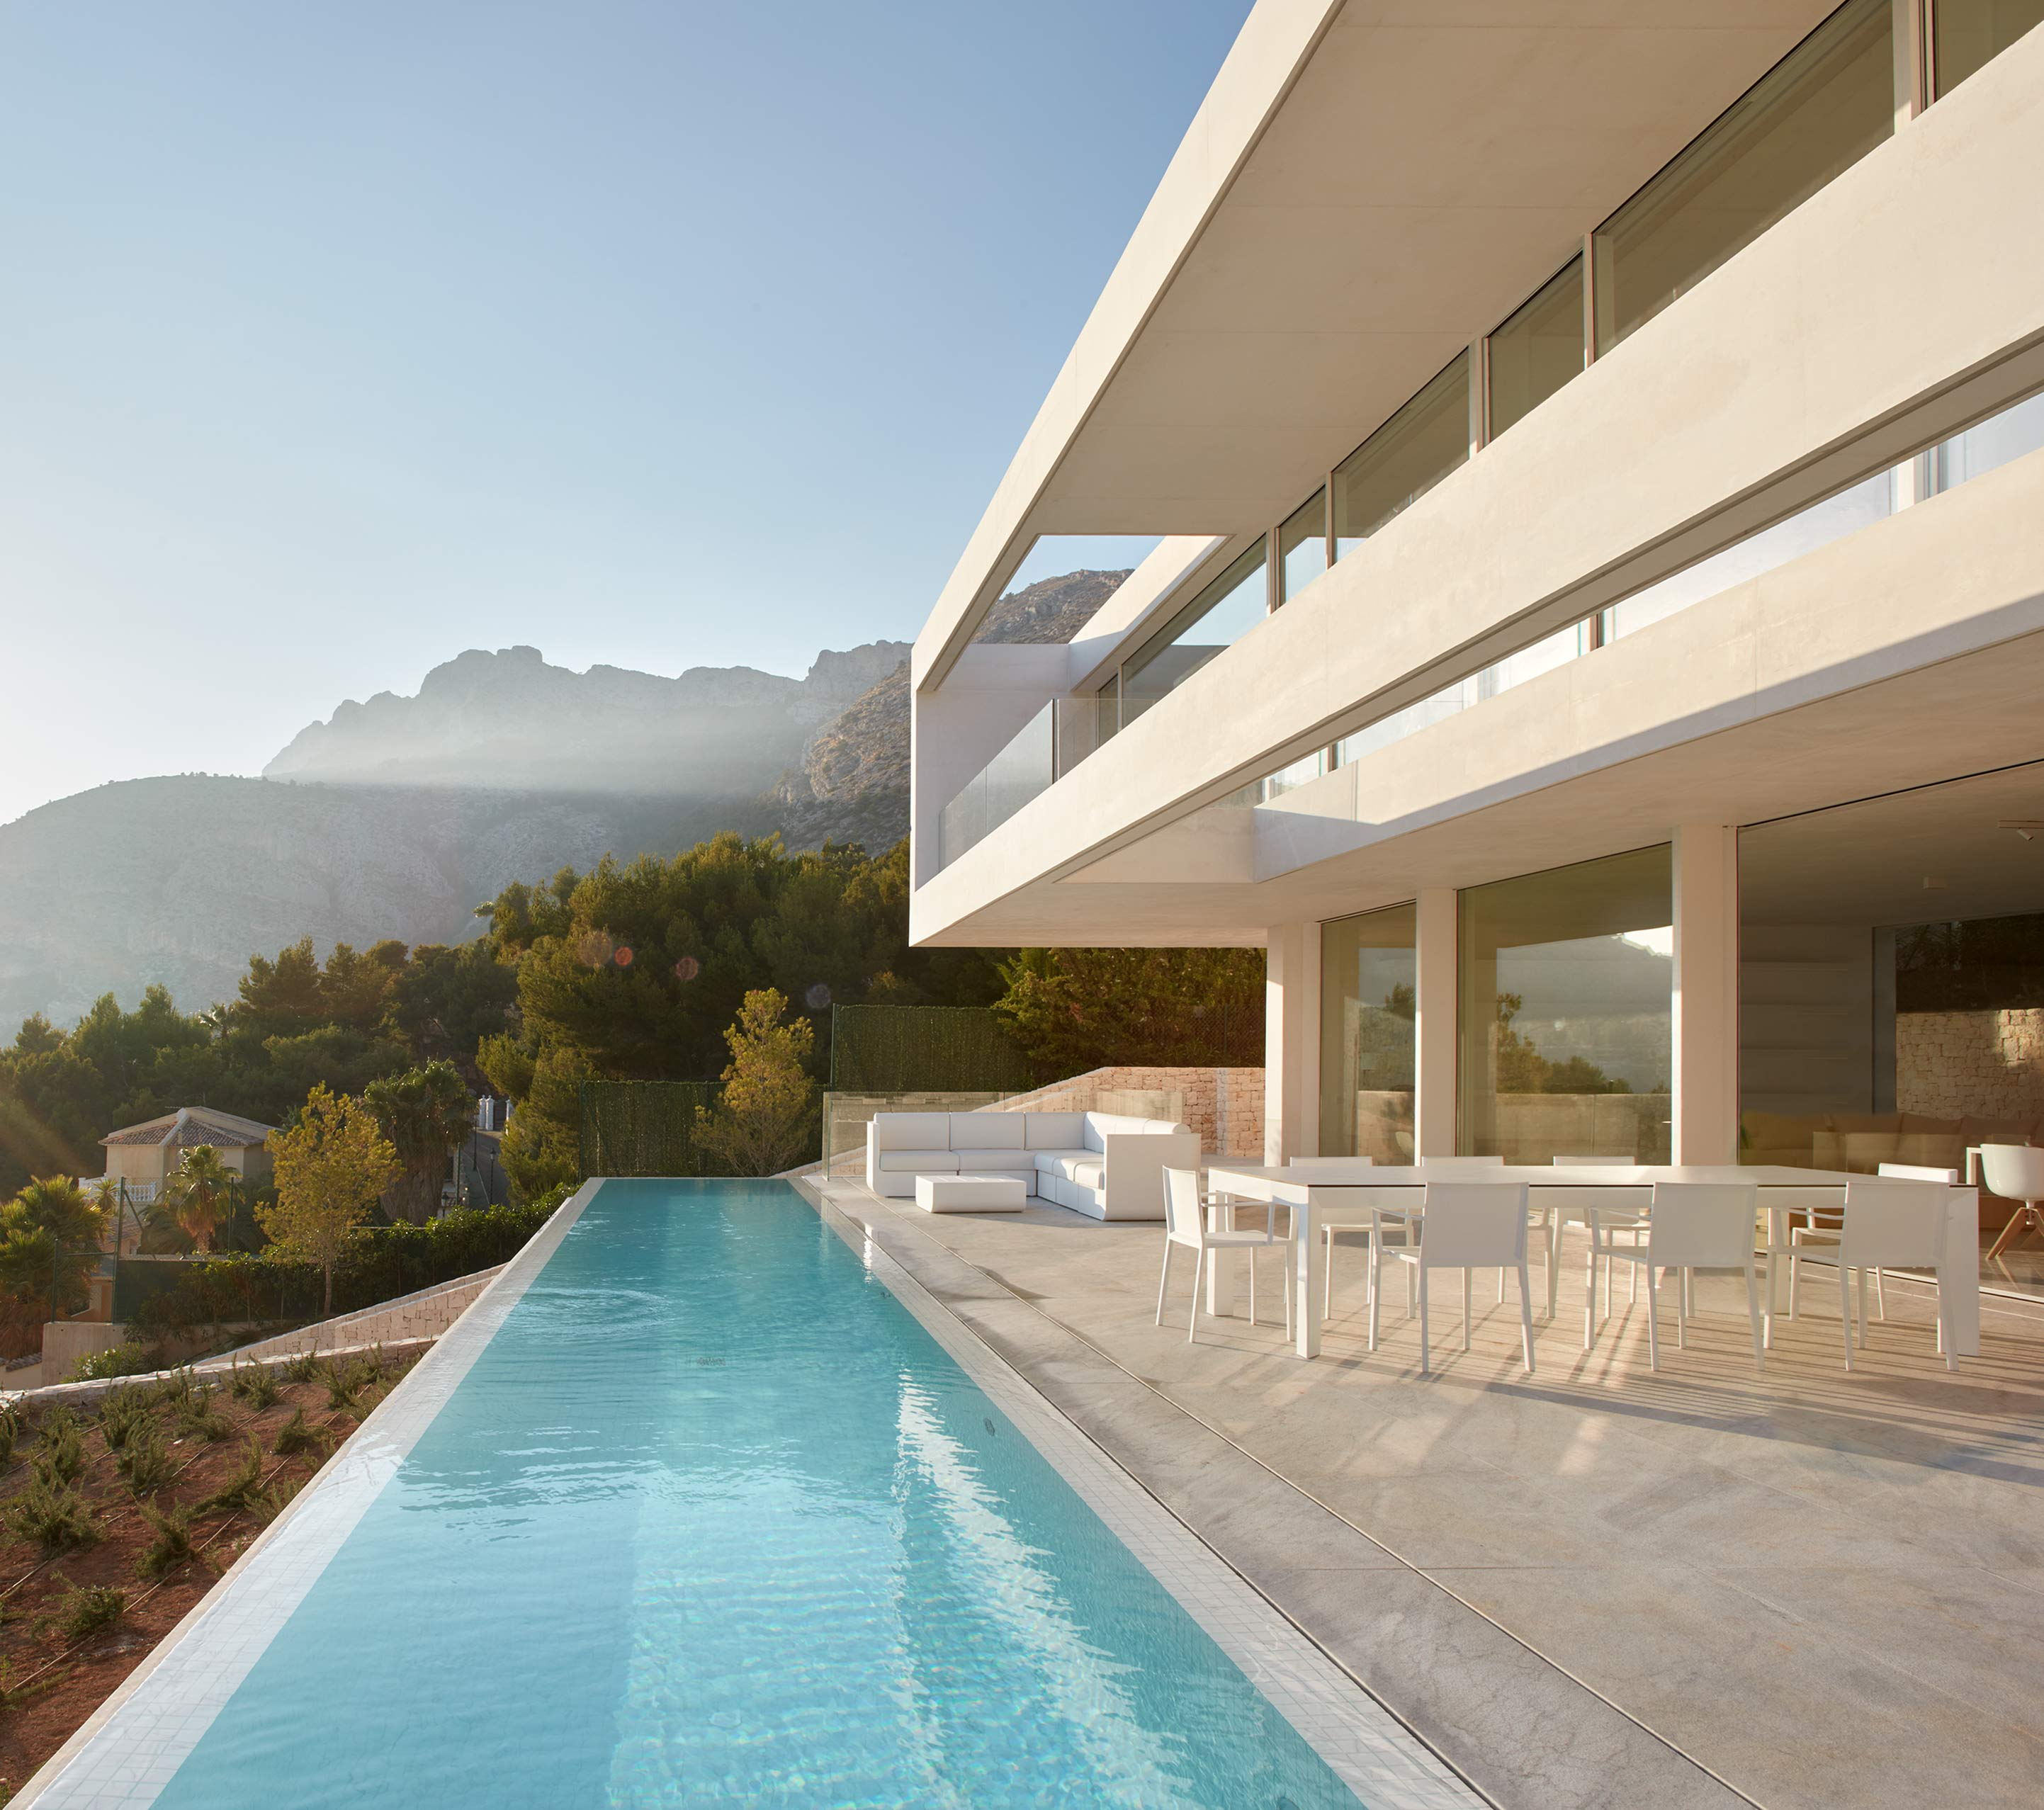 Products-Pool pool-tiles-from-the-earth-range